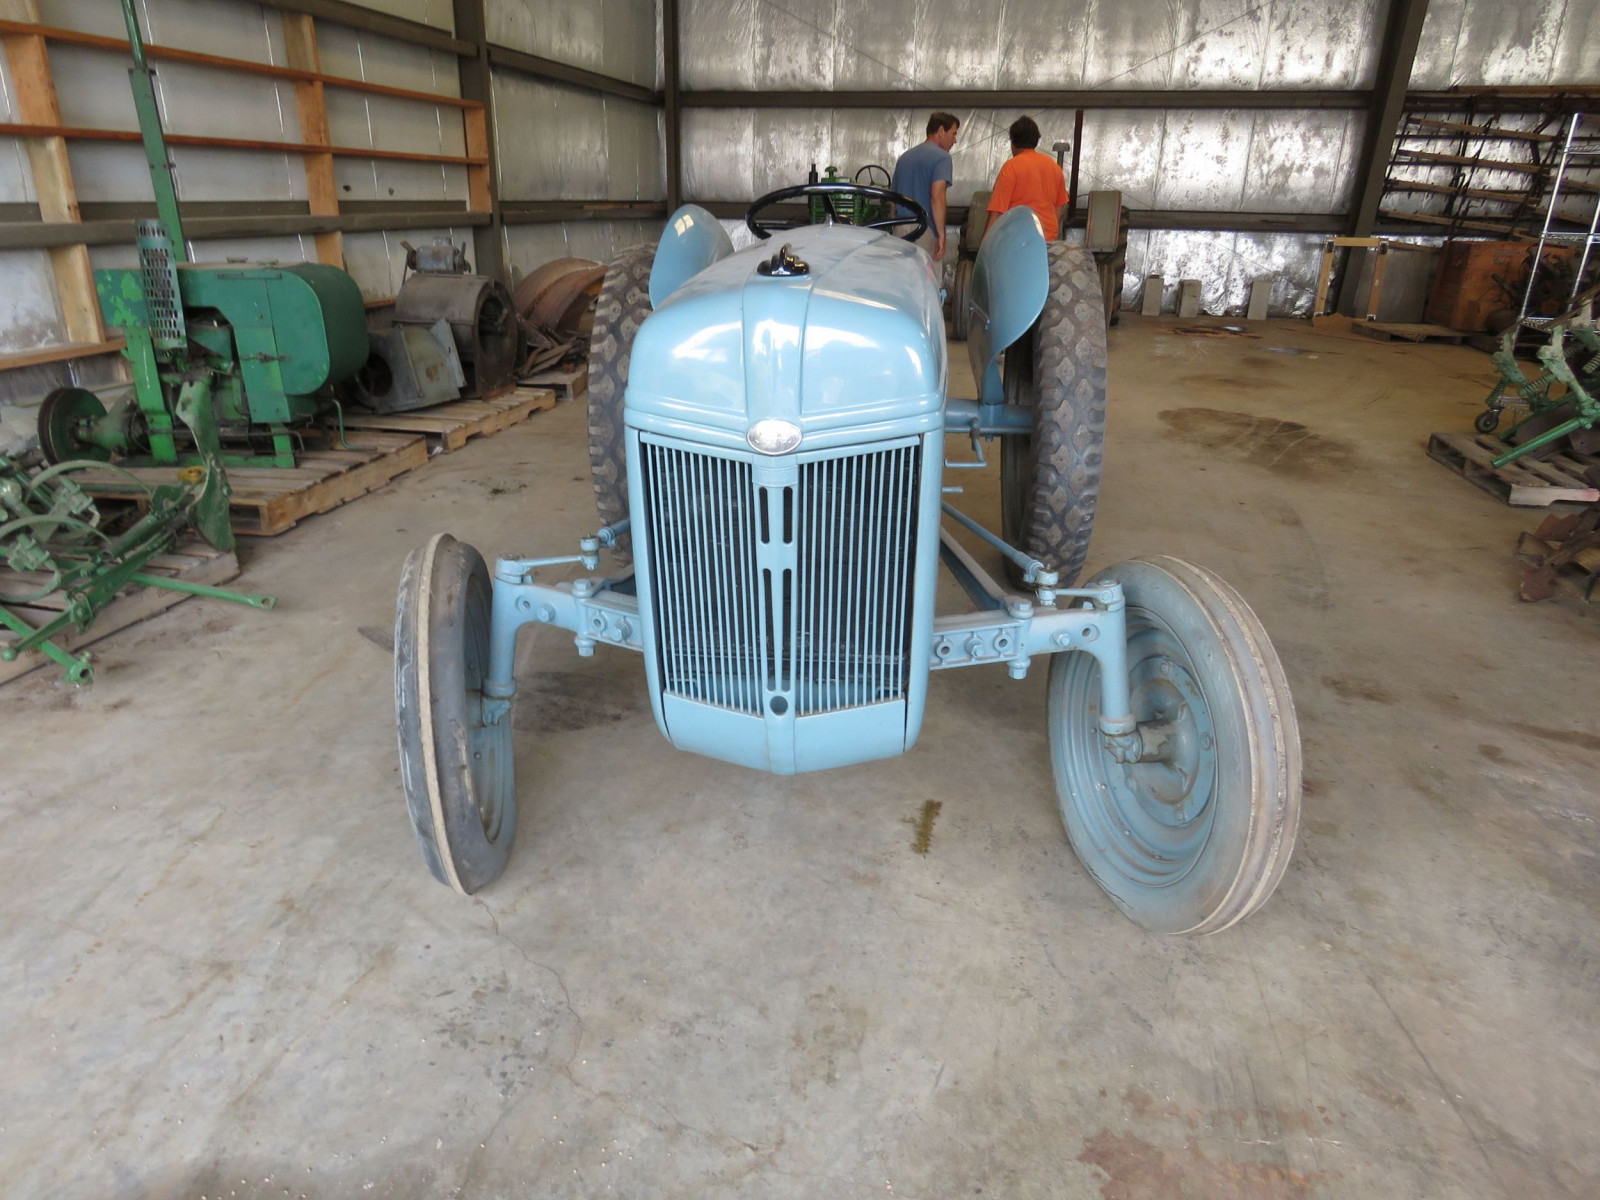 1940 Ford 9N Tractor - Image 2